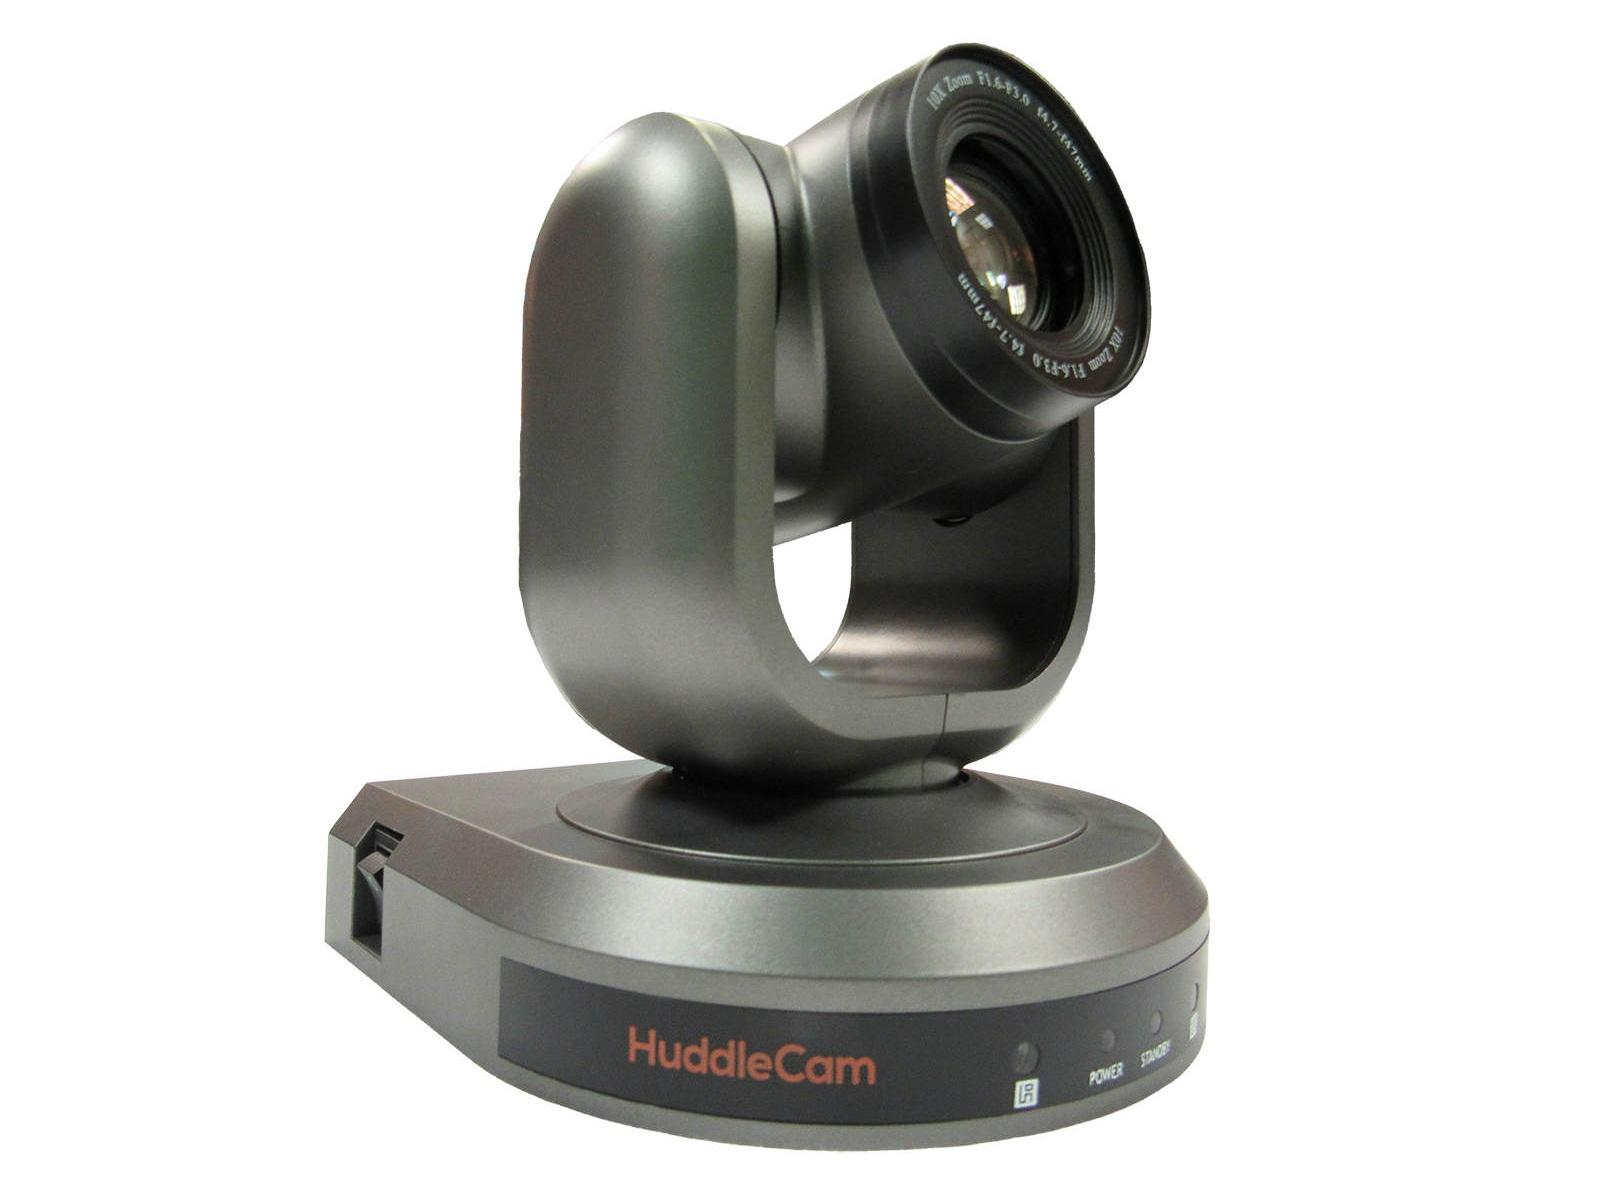 HuddleCamHD HC10X-GY-G3 10X Optical Zoom/USB 3.0/1920x1080p Camera/61 degree FOV Lens/Gray